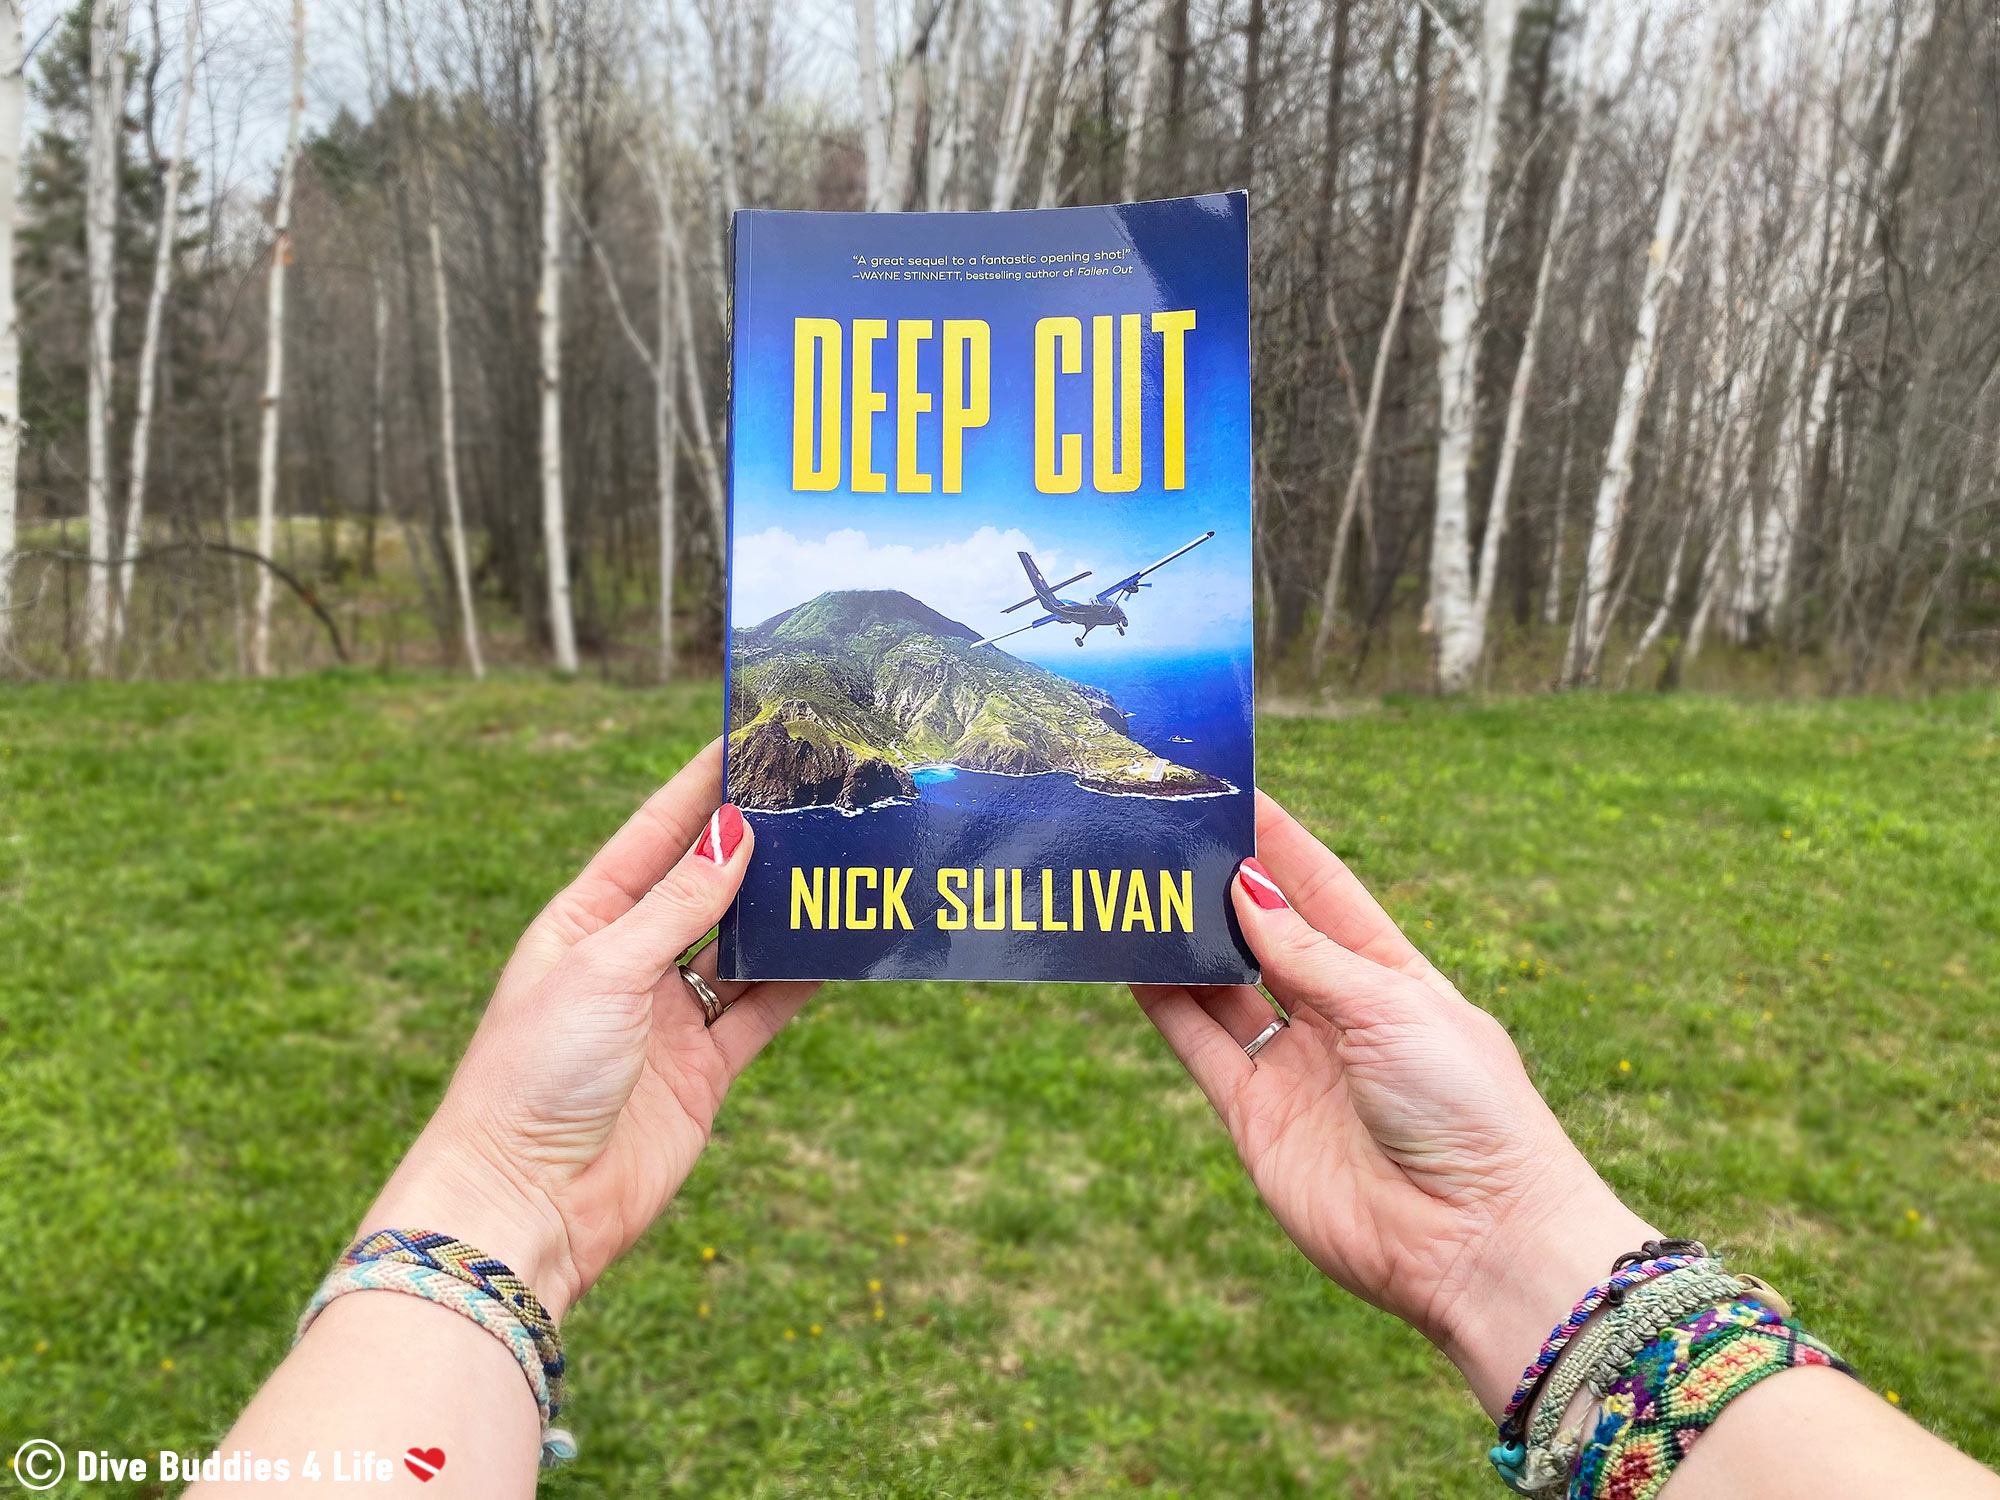 The Cover Of The Deep Cut Book And The Forest In The Background